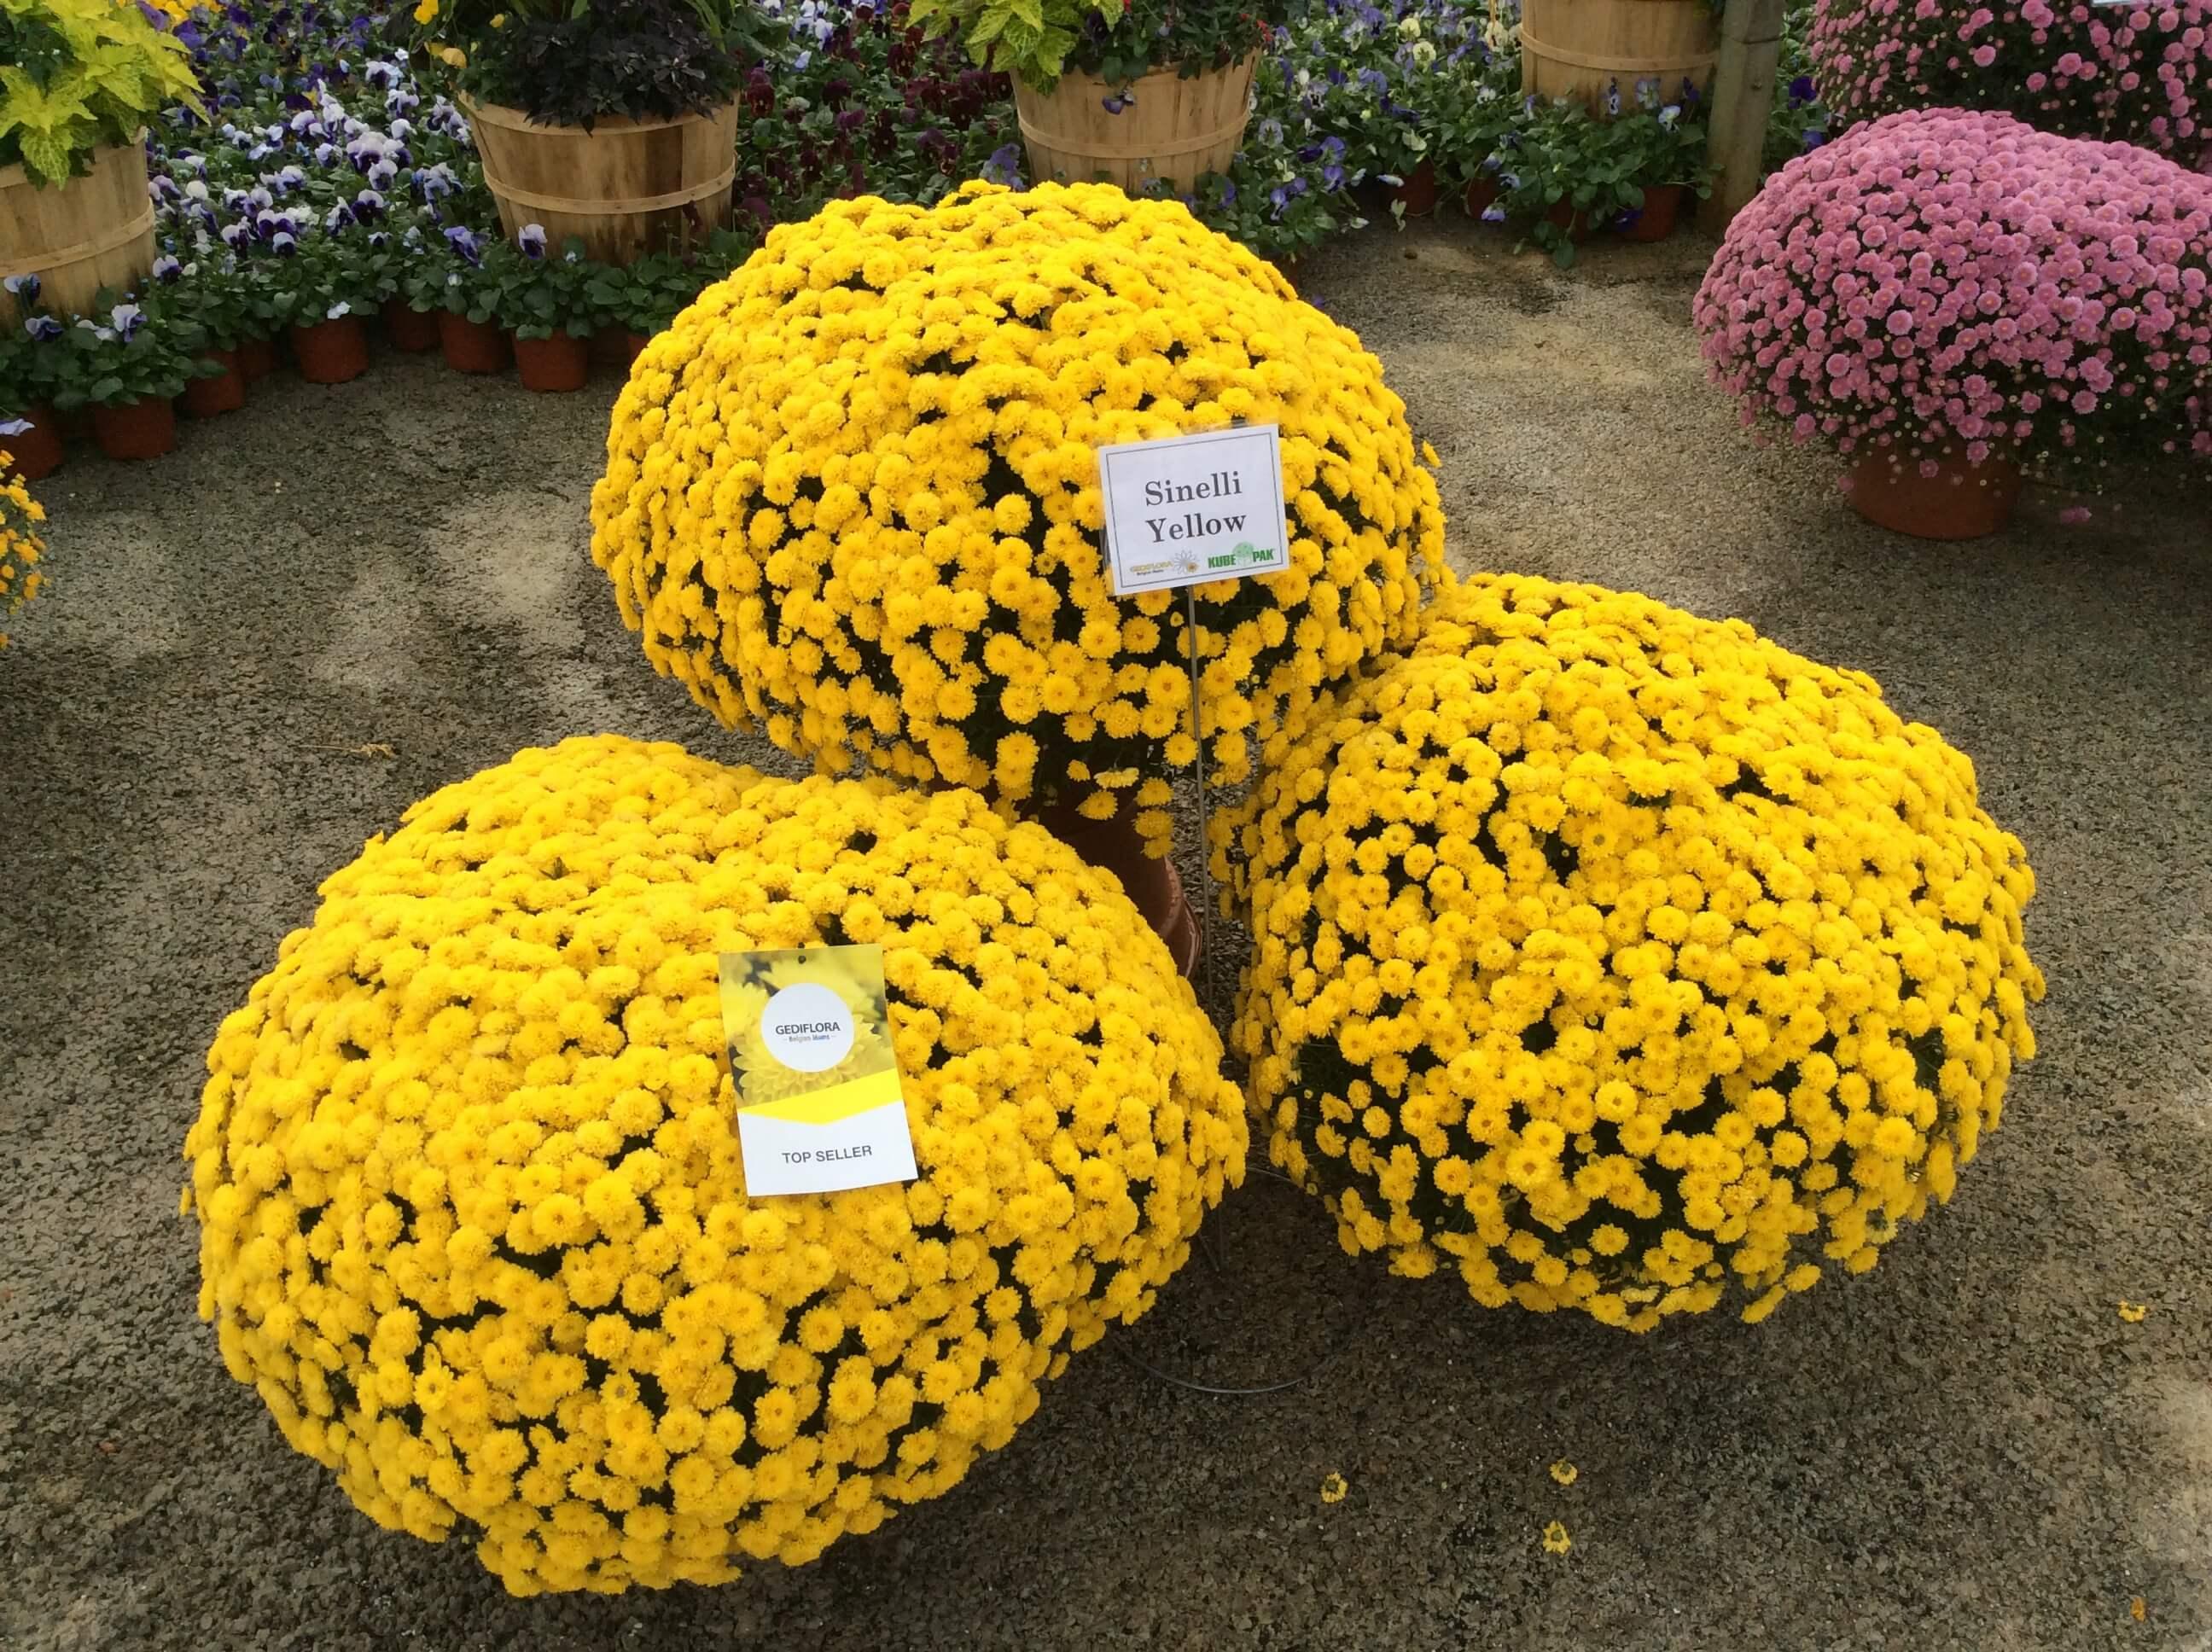 Mums raleigh fall plants in nc fairview garden center click to enlarge izmirmasajfo